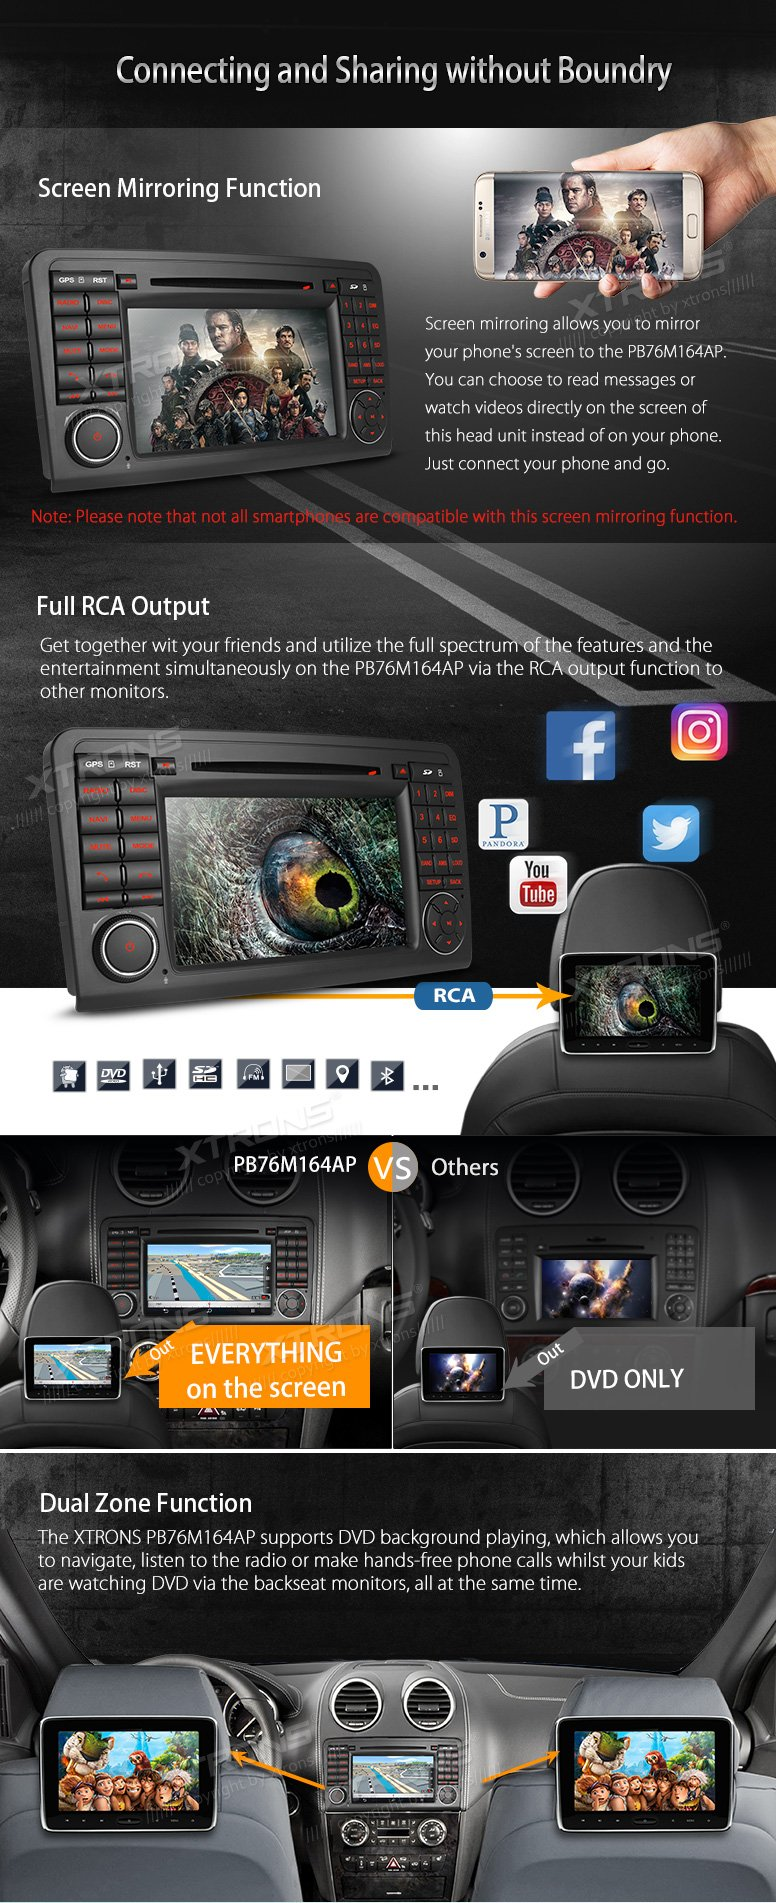 XTRONS Android 6.0 Octa-Core 64Bit 7 Inch Capacitive Touch Screen Car Stereo Radio DVD Player GPS CANbus Screen Mirroring Function OBD2 Tire Pressure Monitoring for Mercedes-Benz ML-W164